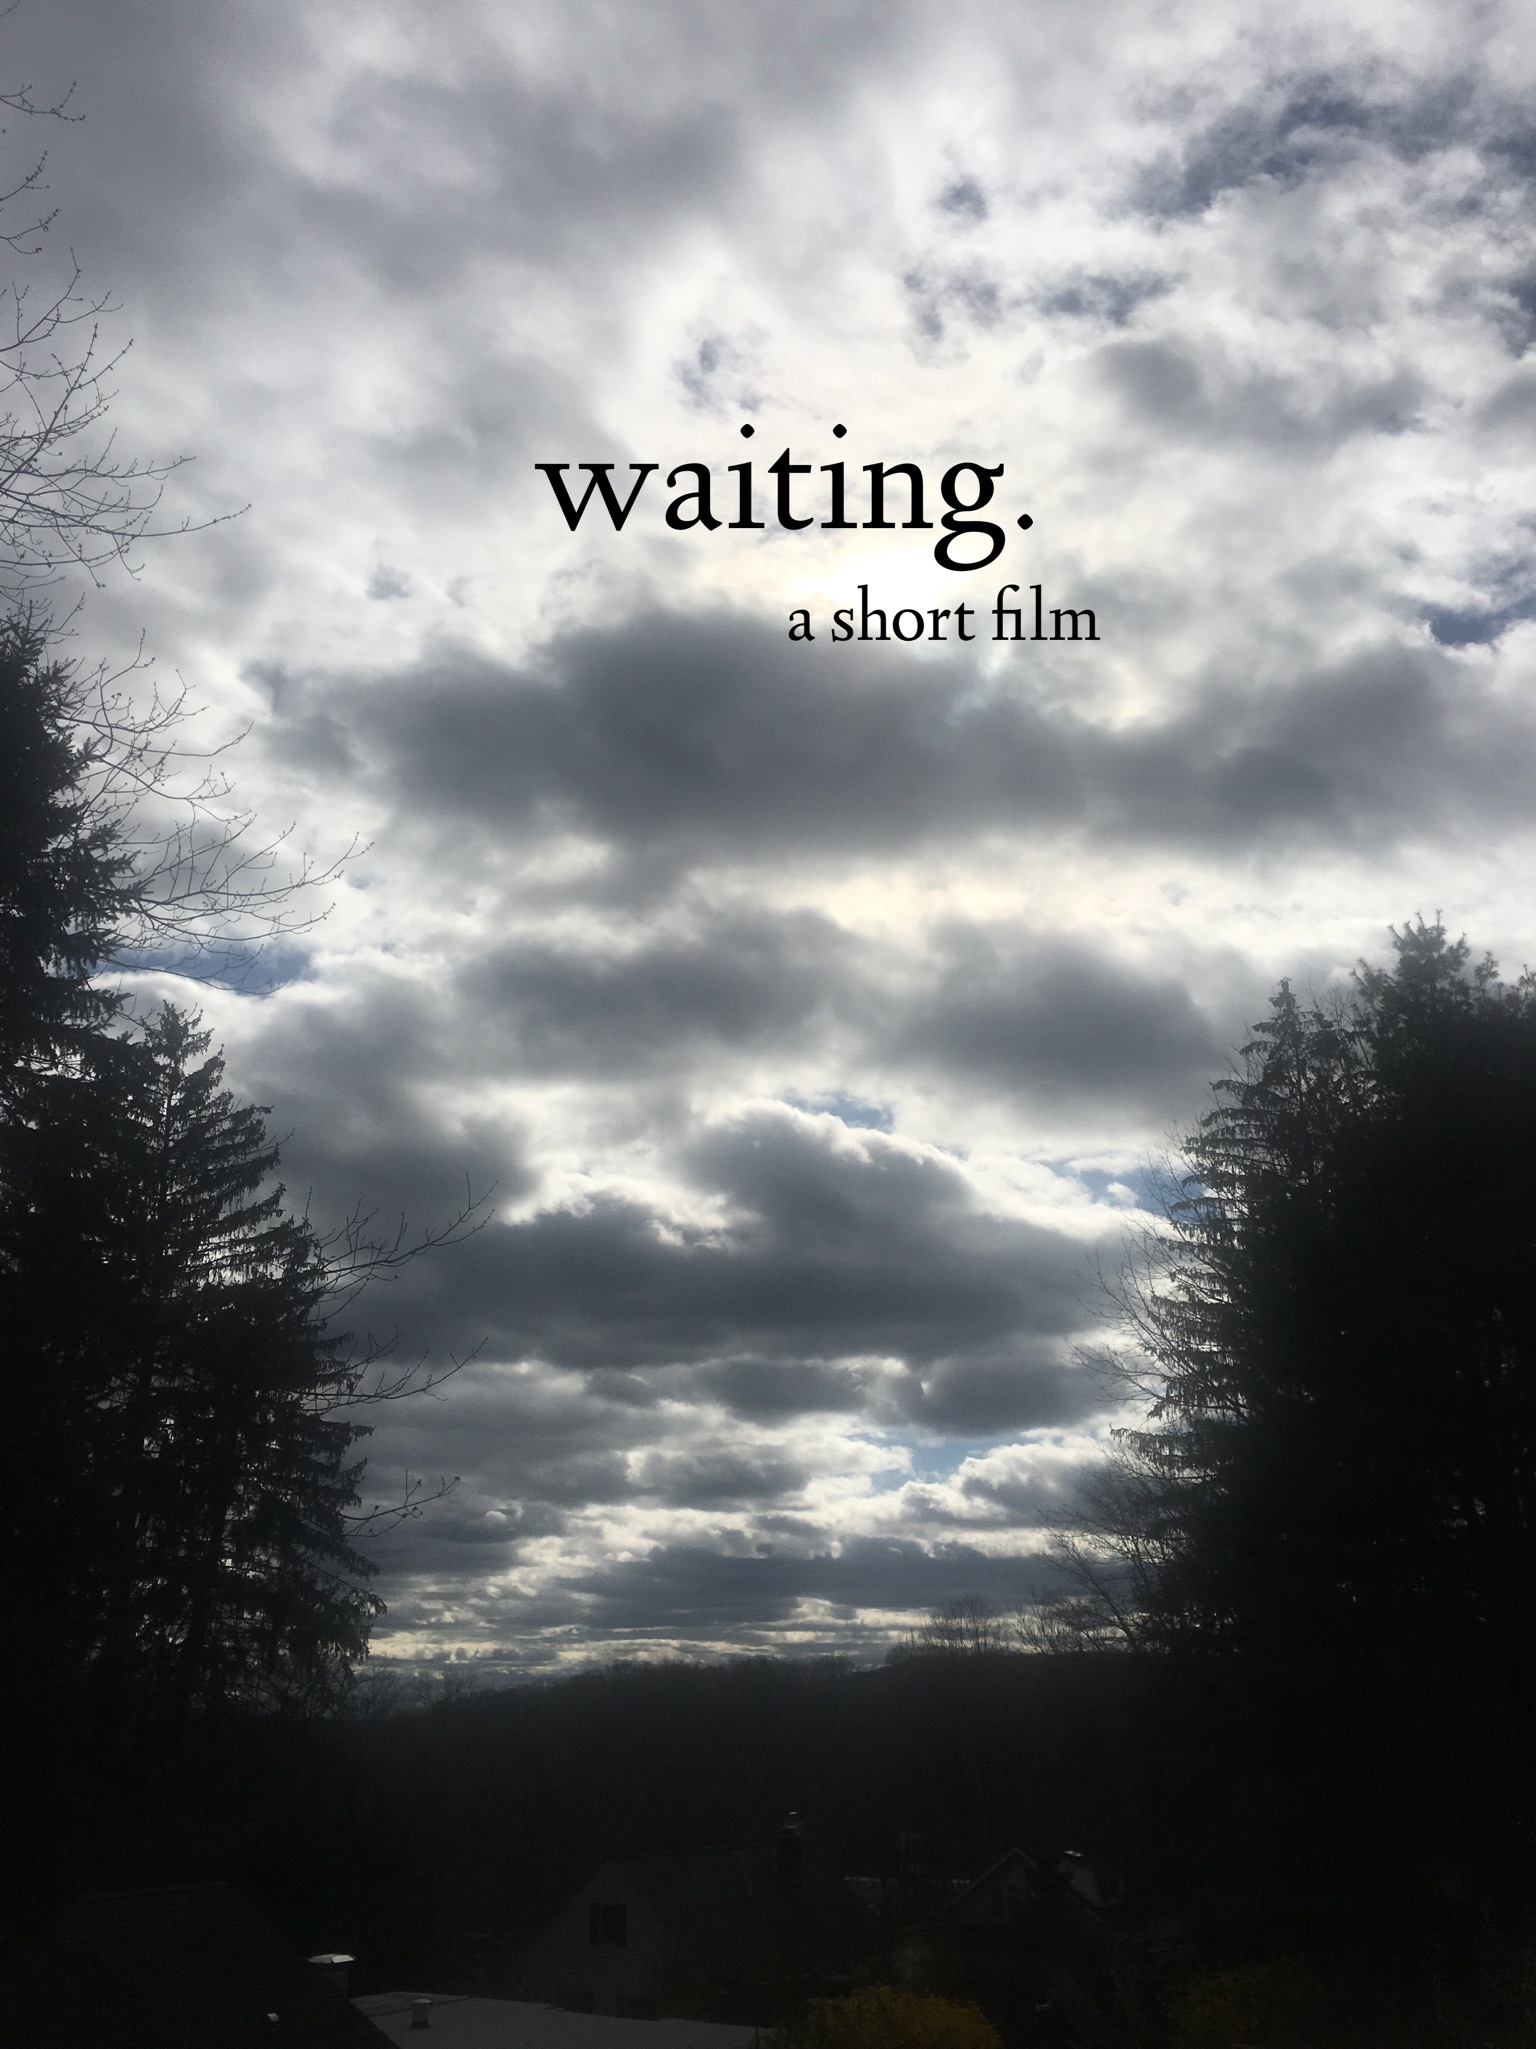 Waiting, a short film